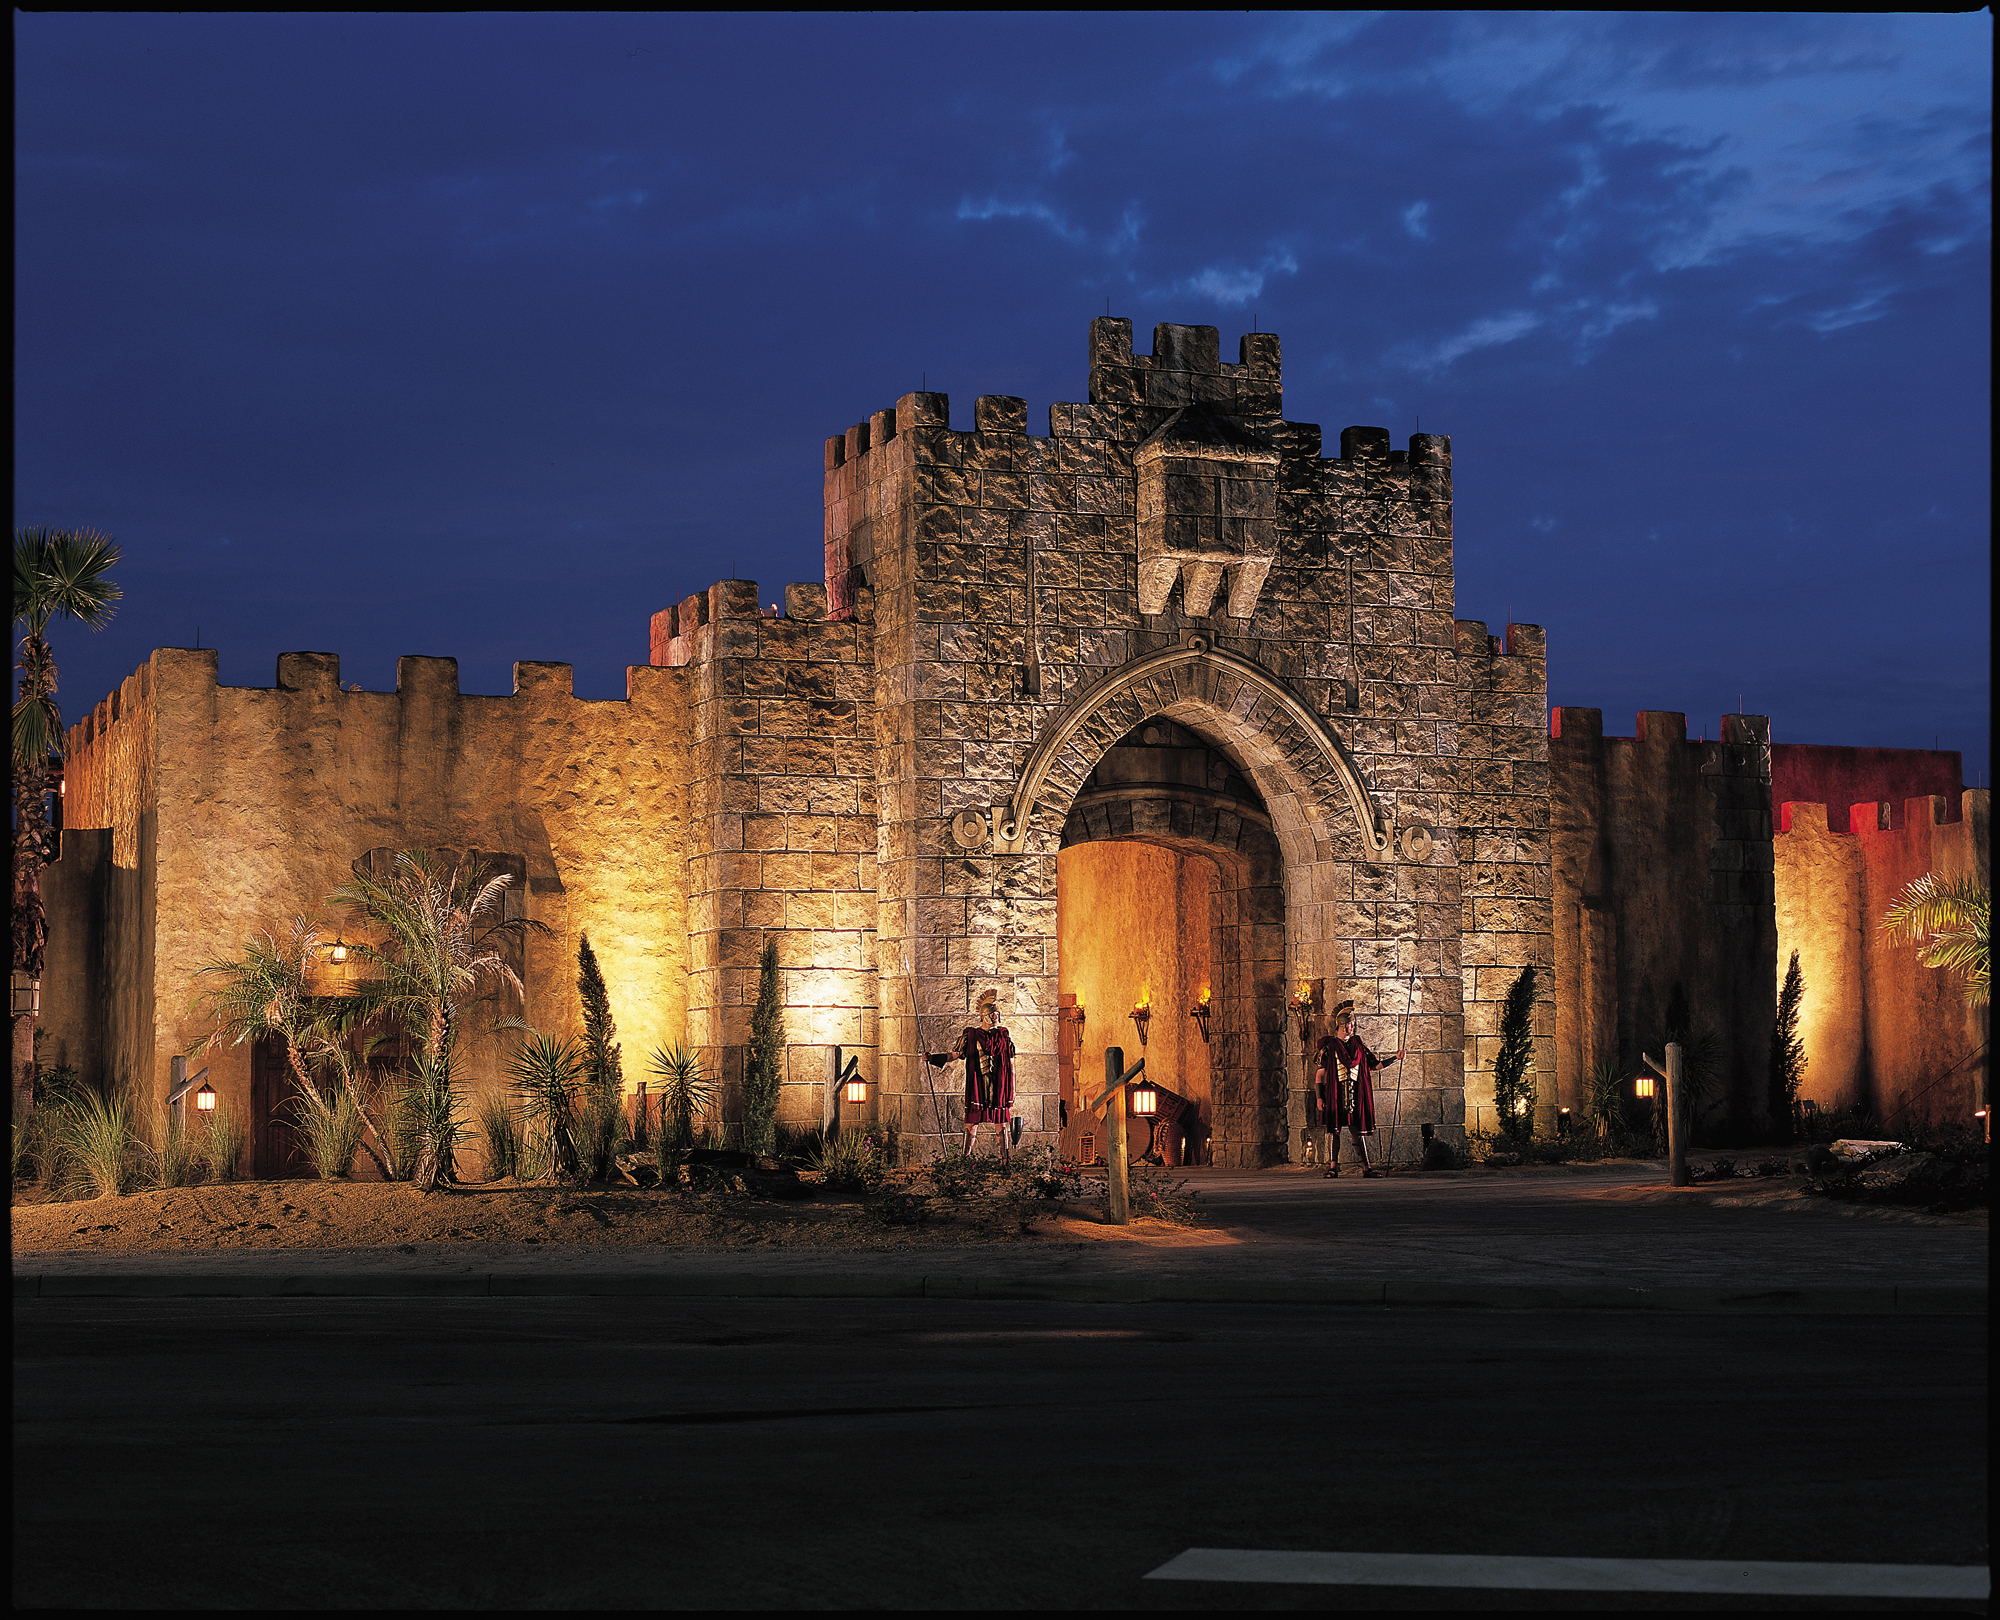 View of the City Gate in Holy Land, Florida